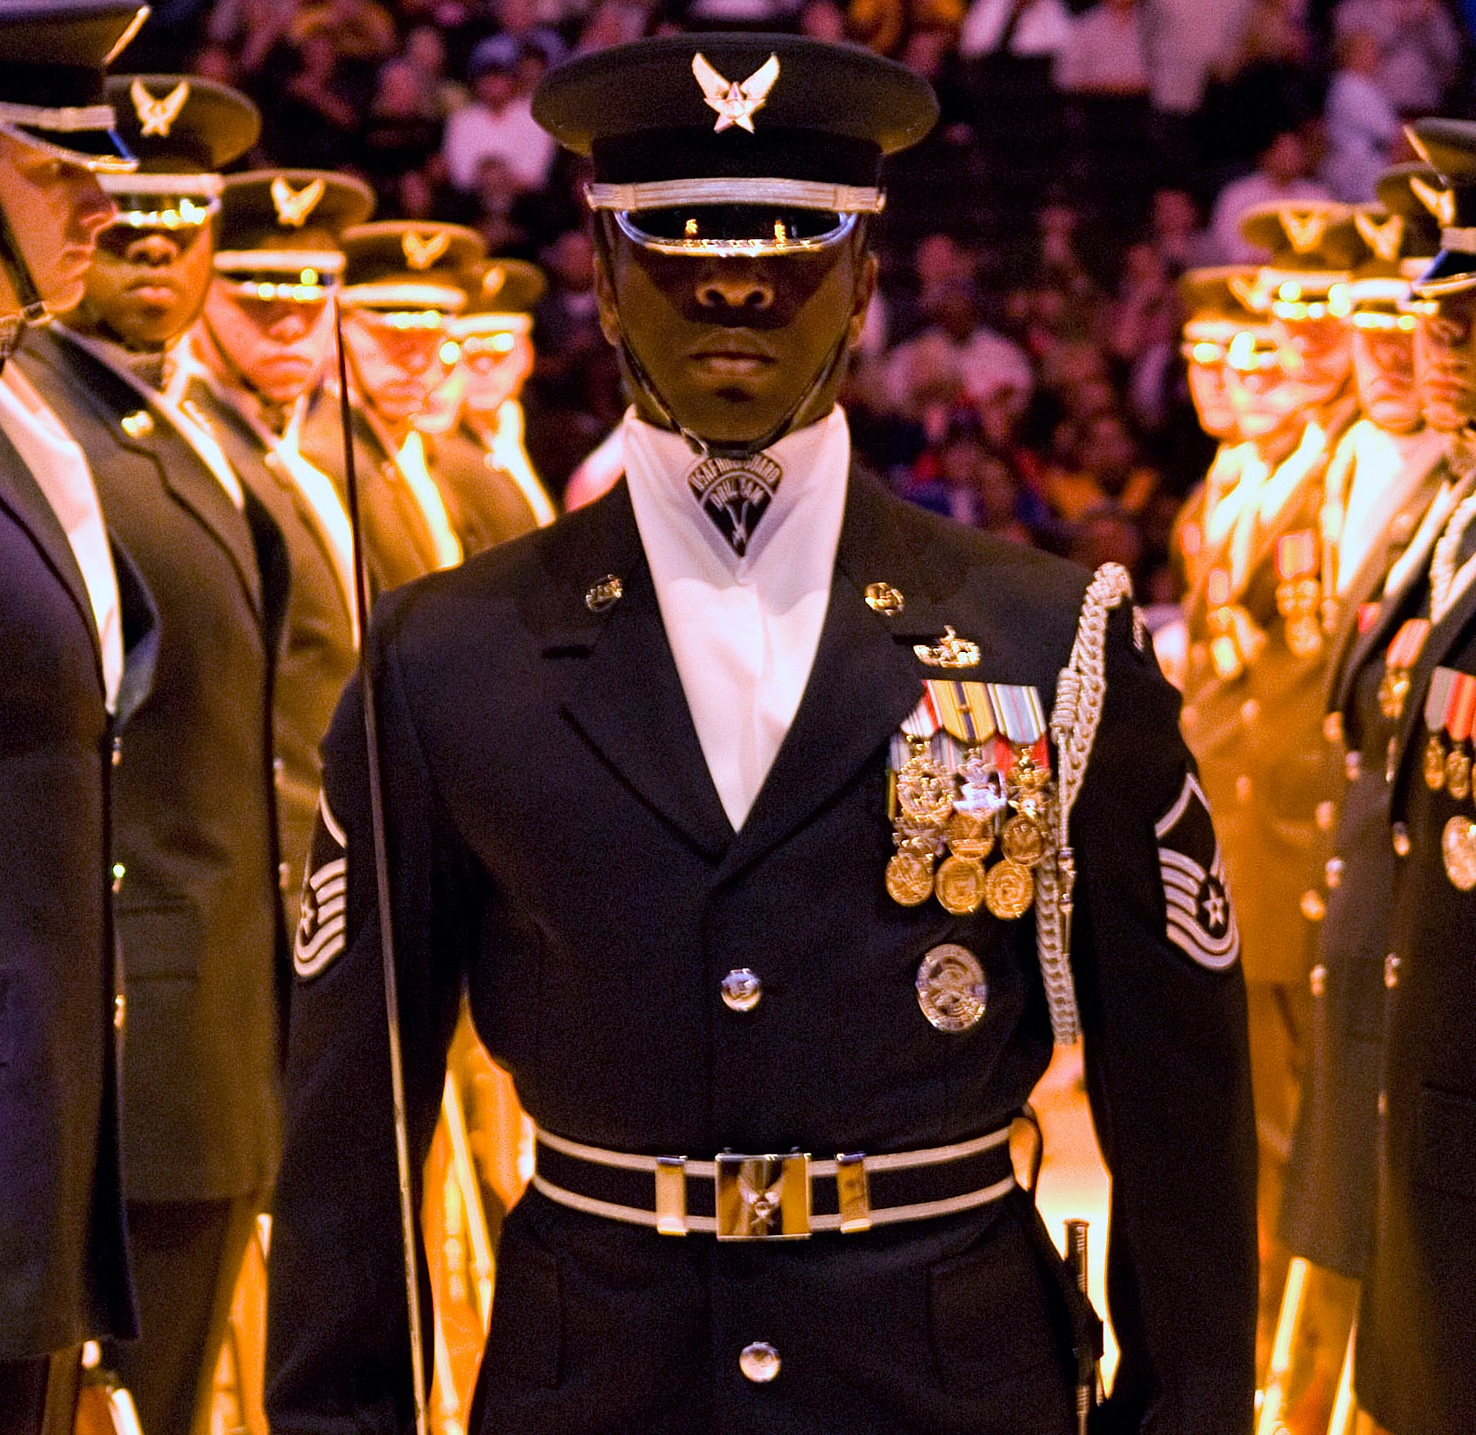 532c60cf77cc5 Uniforms of the United States Air Force | Military Wiki | FANDOM ...